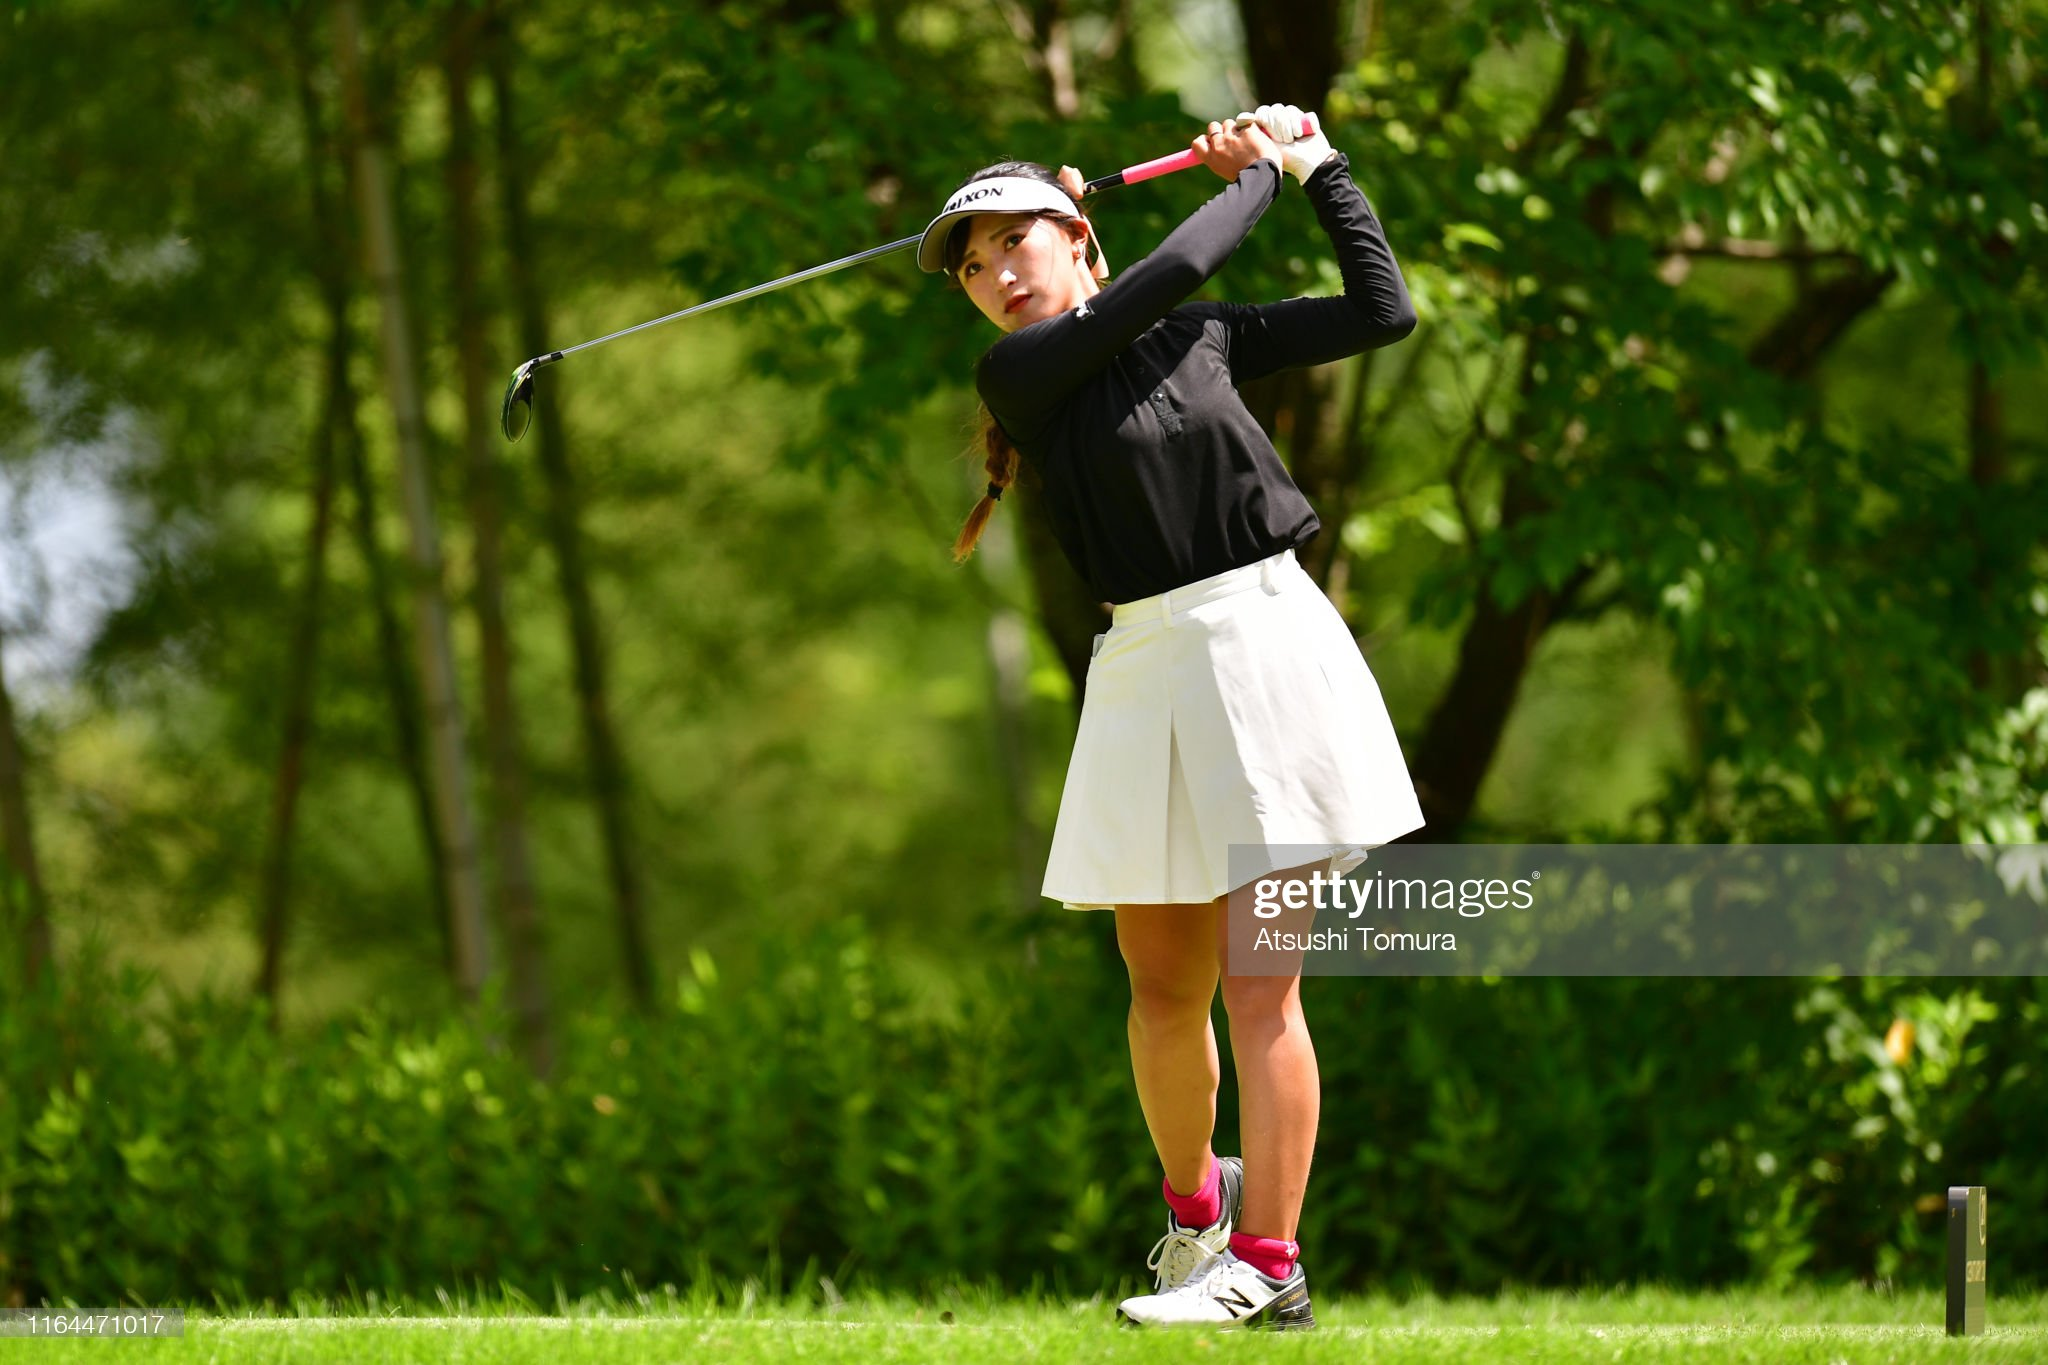 https://media.gettyimages.com/photos/reika-usui-of-japan-hits-her-tee-shot-on-the-8th-hole-during-the-of-picture-id1164471017?s=2048x2048